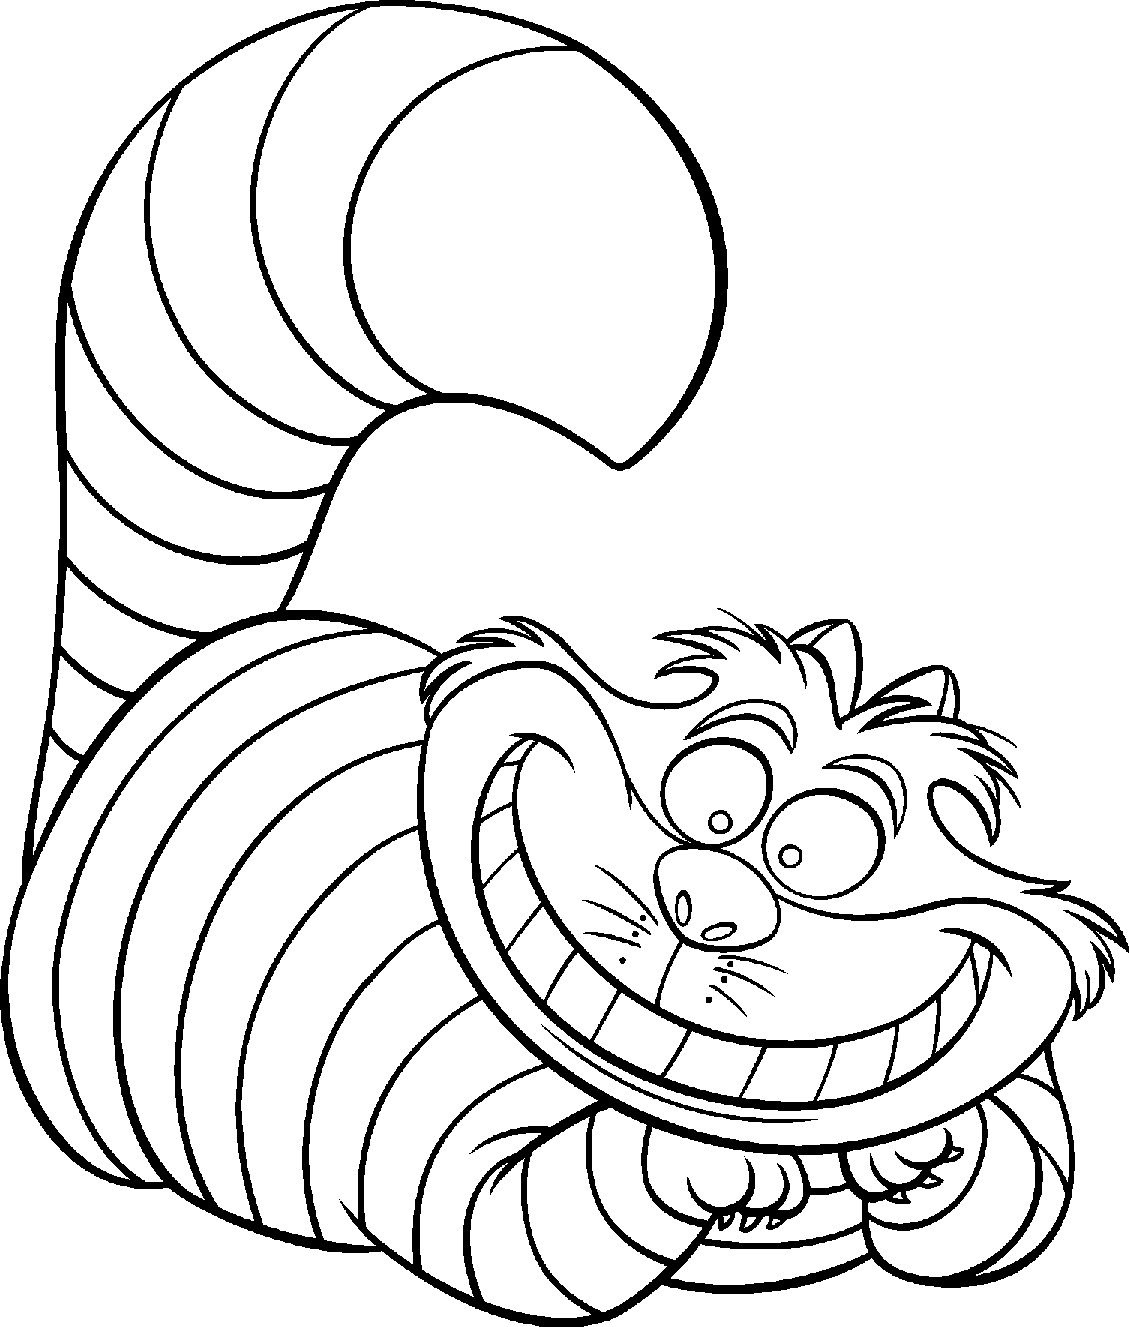 Coloring Pages : Free Printable Disneyring Pages Alice In Wonderland - Free Printable Disney Coloring Pages